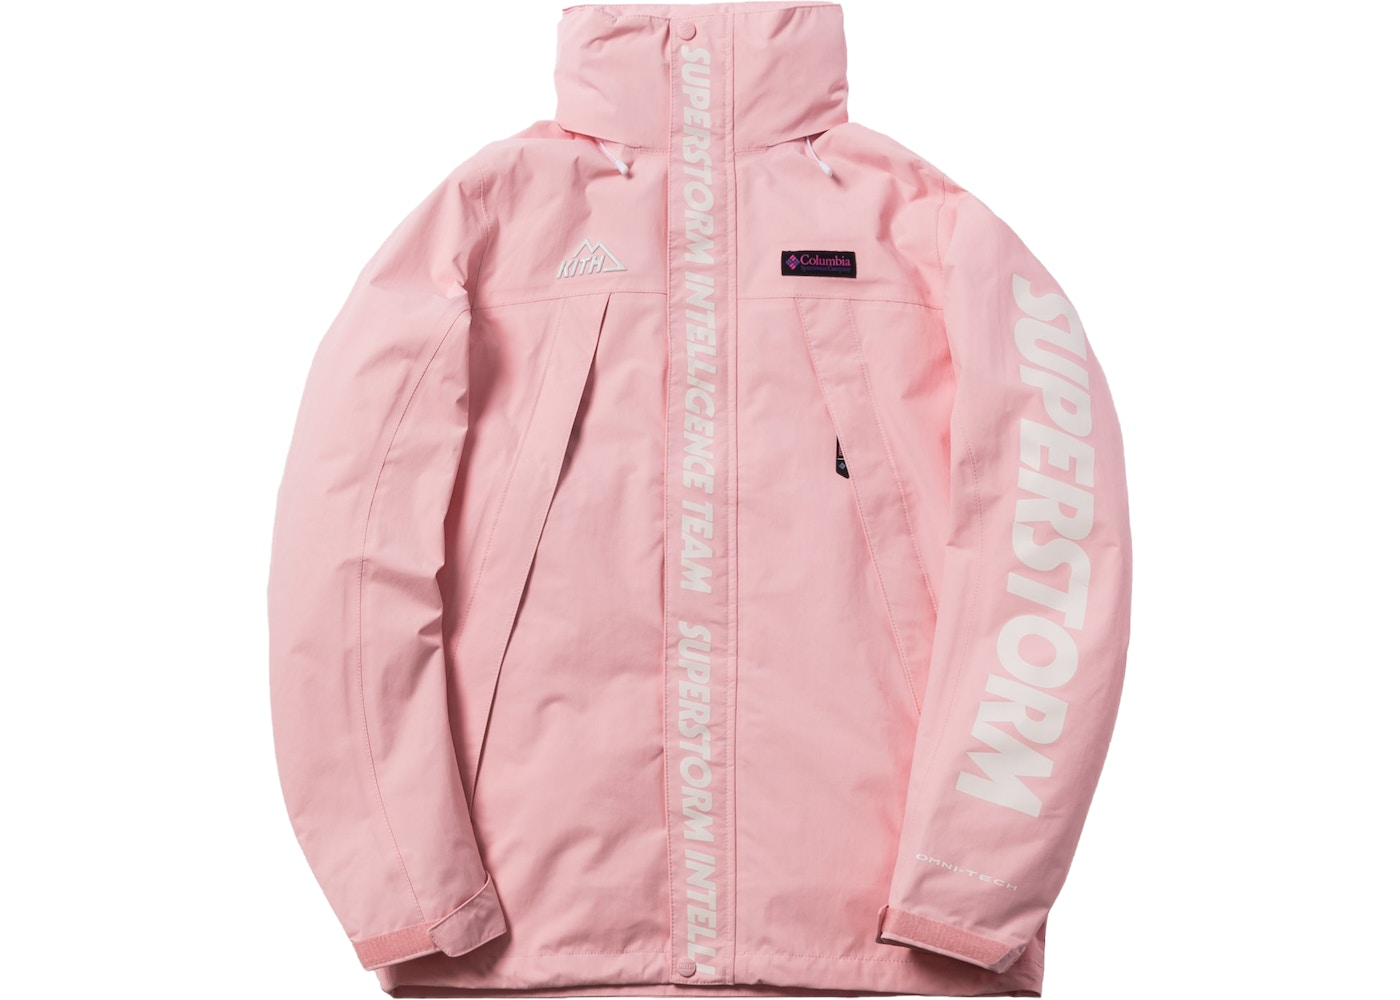 850d44d6 Sell. or Ask. Size L. View All Bids. Kith x Columbia OSO Rain Jacket Cherry  Blossom